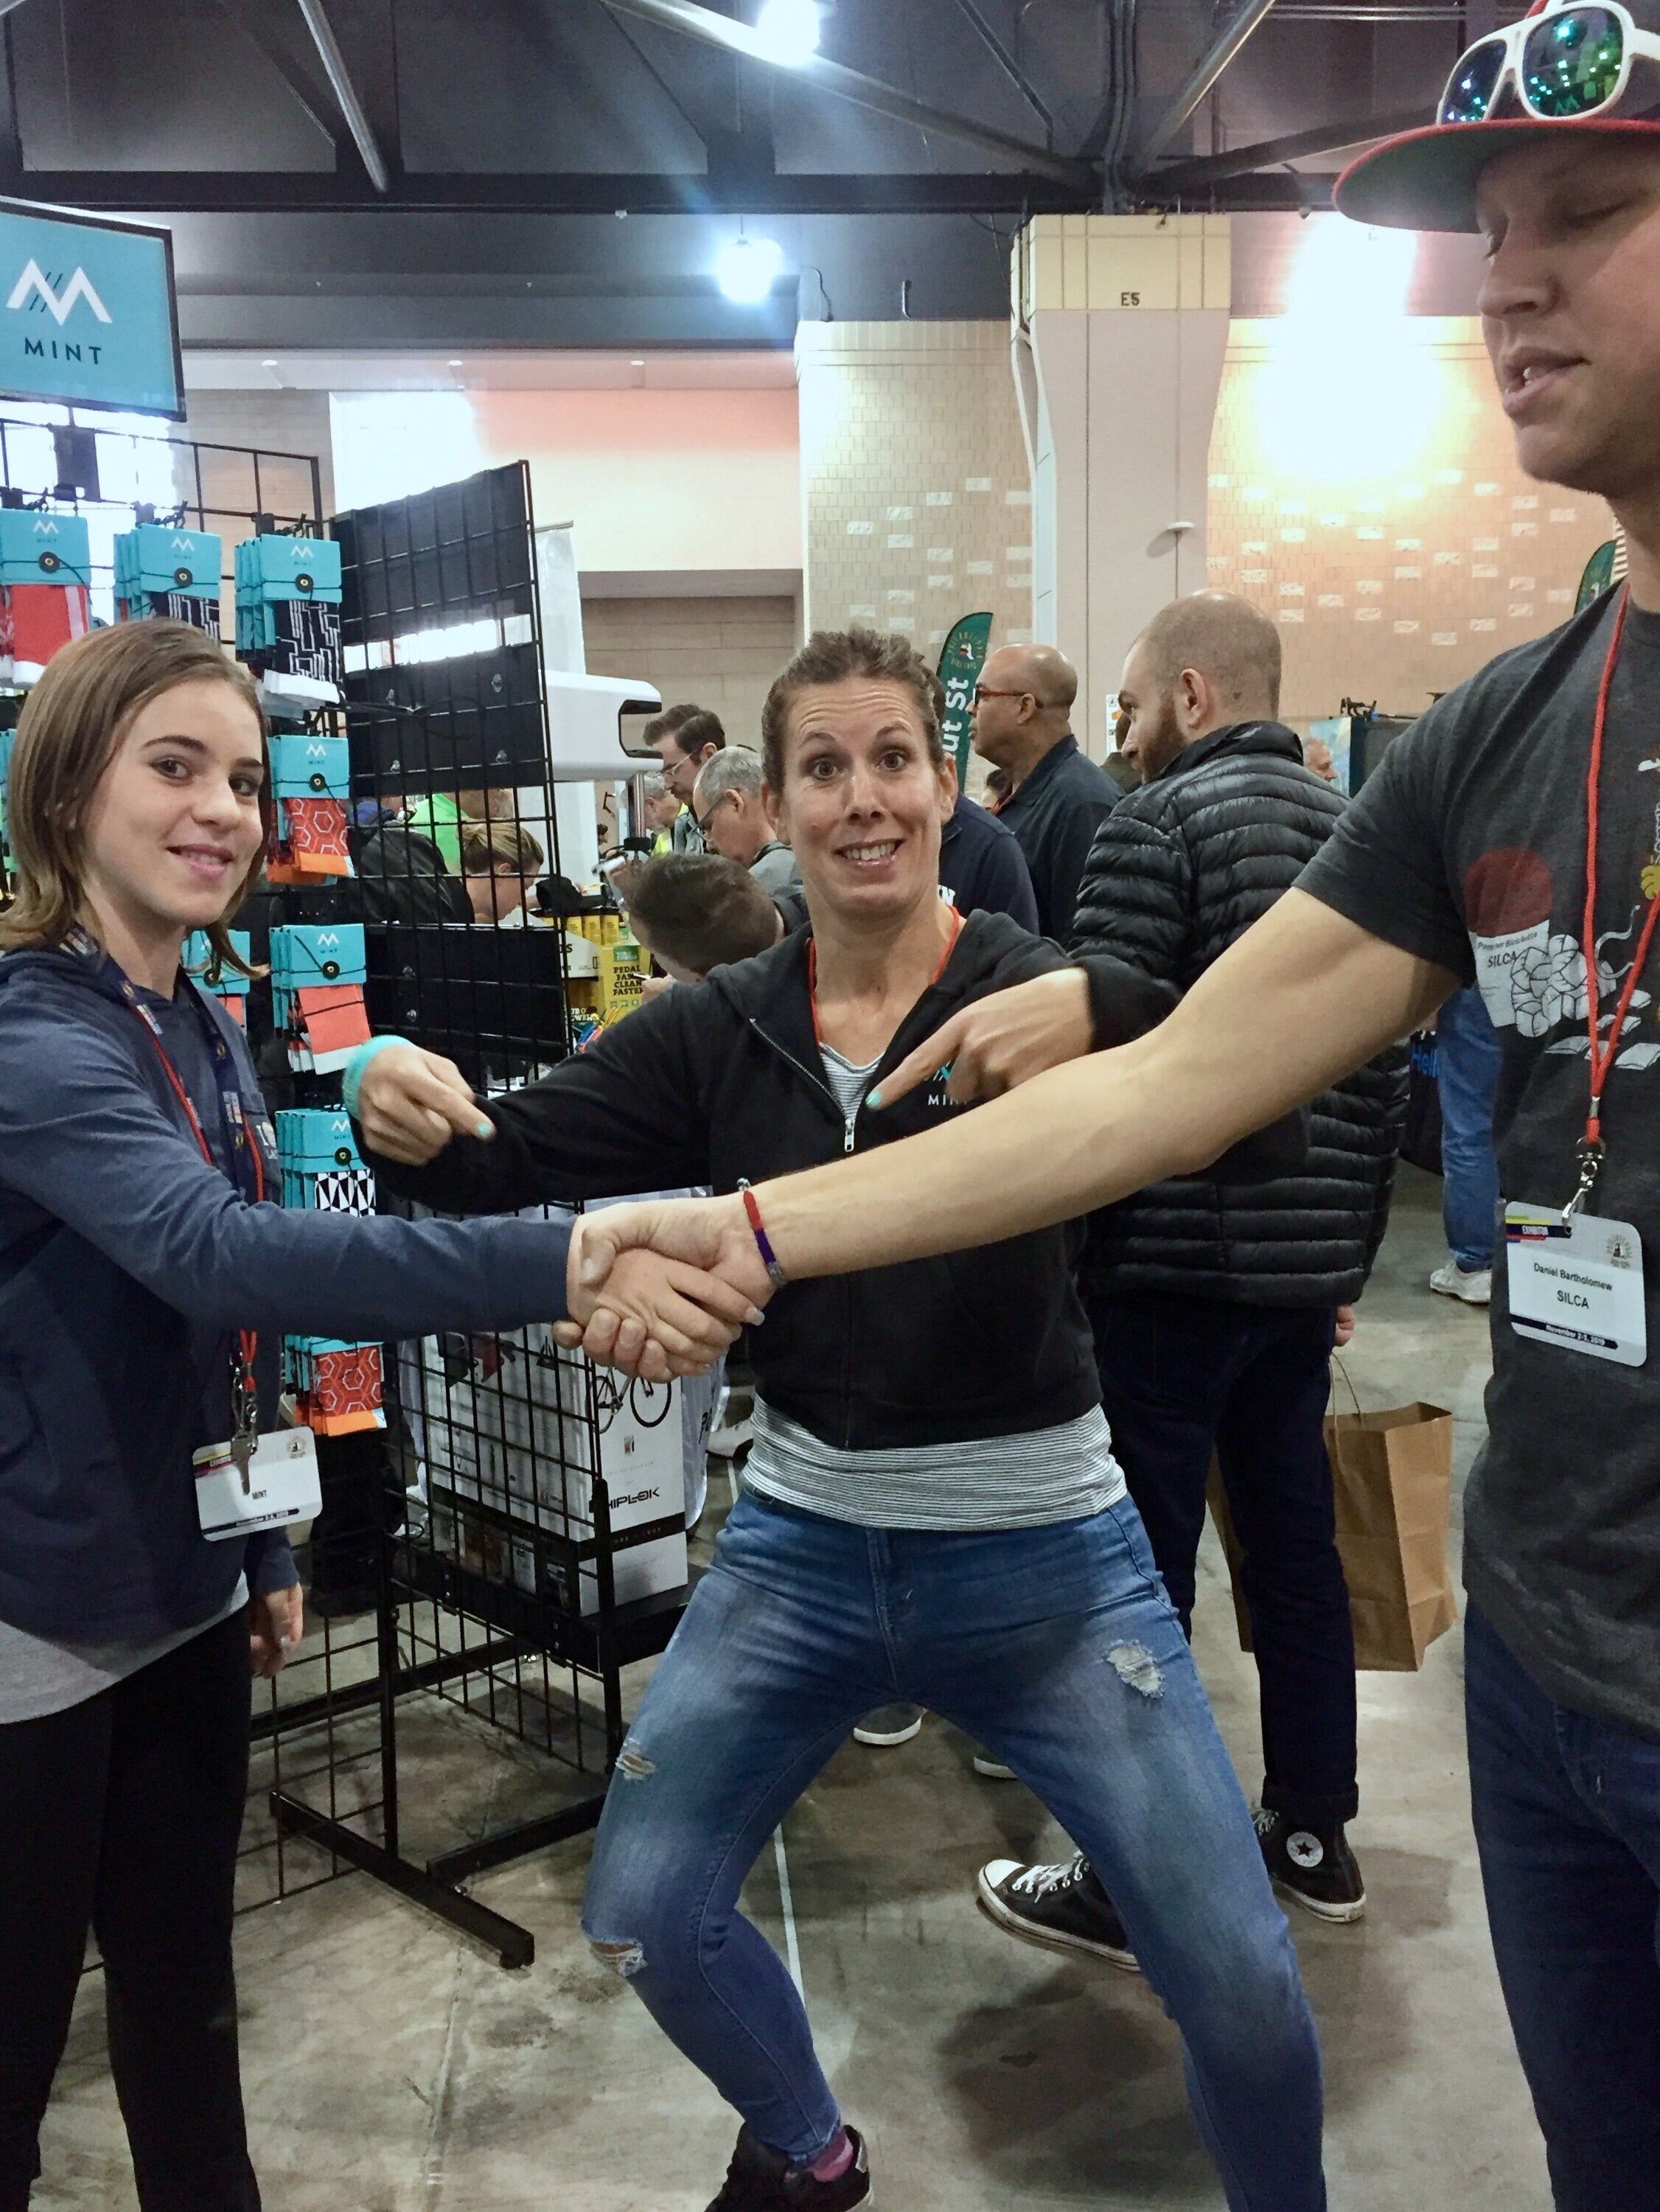 Addison Mason & the Goodr Guy make a deal. HINT: I buy your socks, you double MINT Julep me. Deal or no deal?